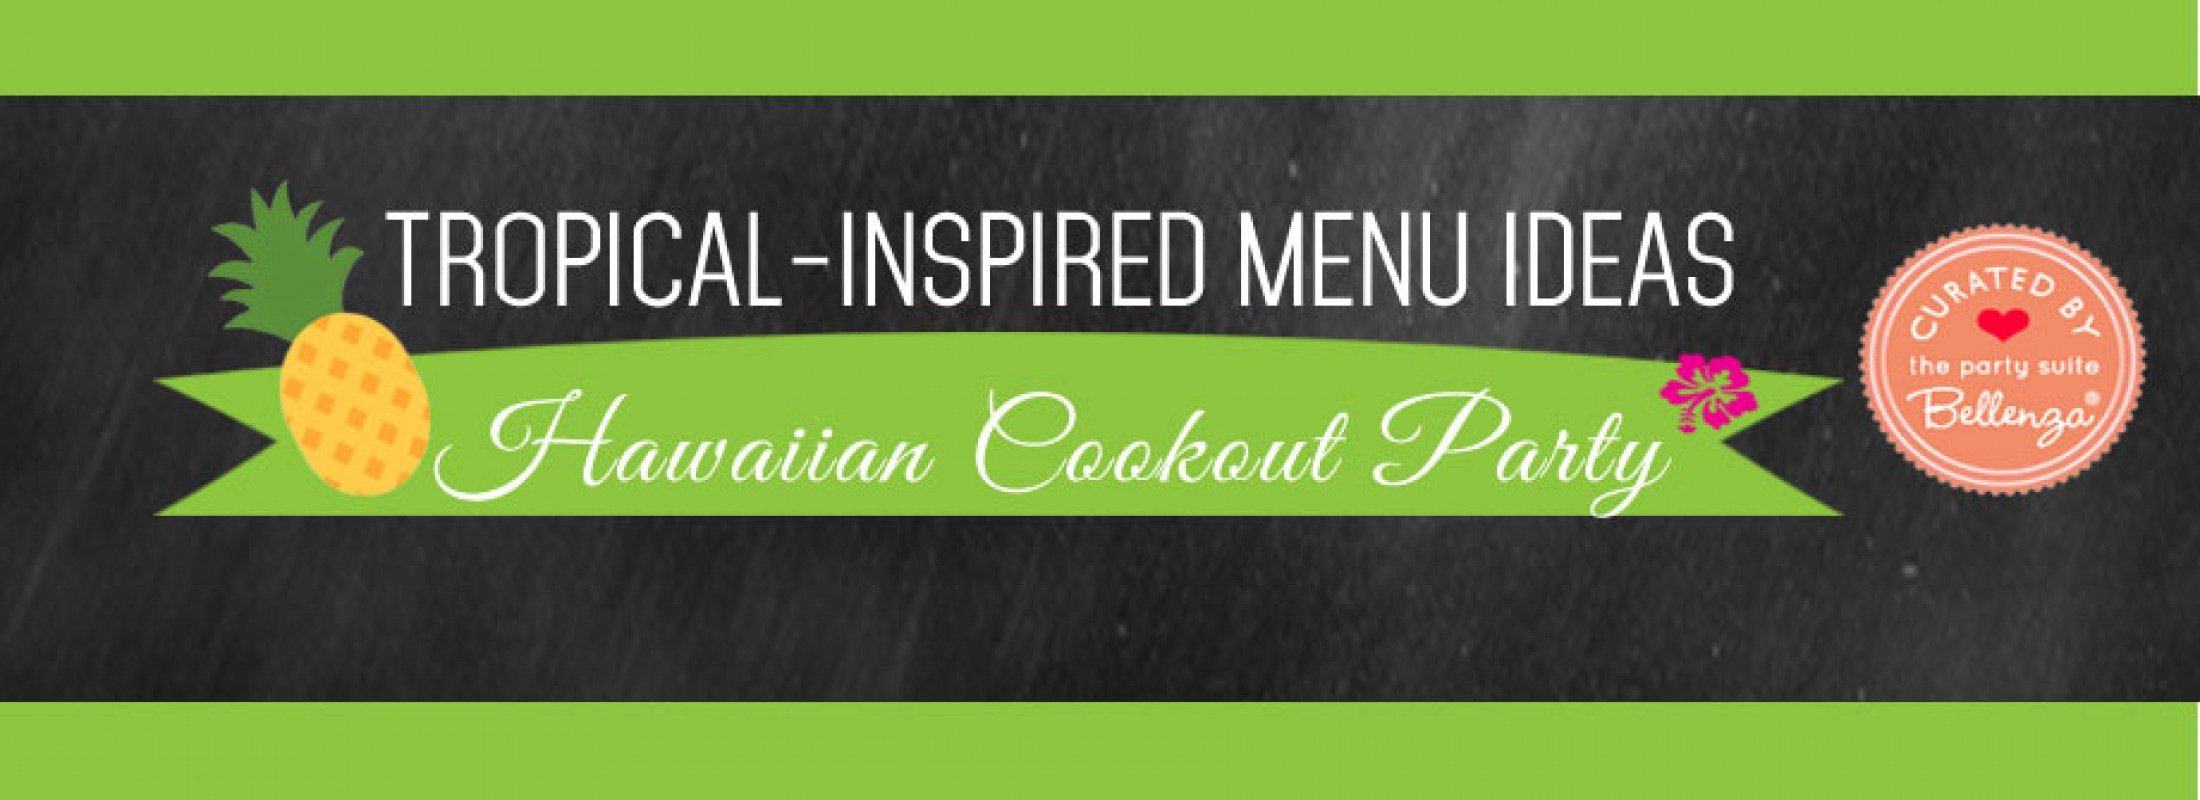 tropical-inspired menu ideas for a hawaiian cookout party